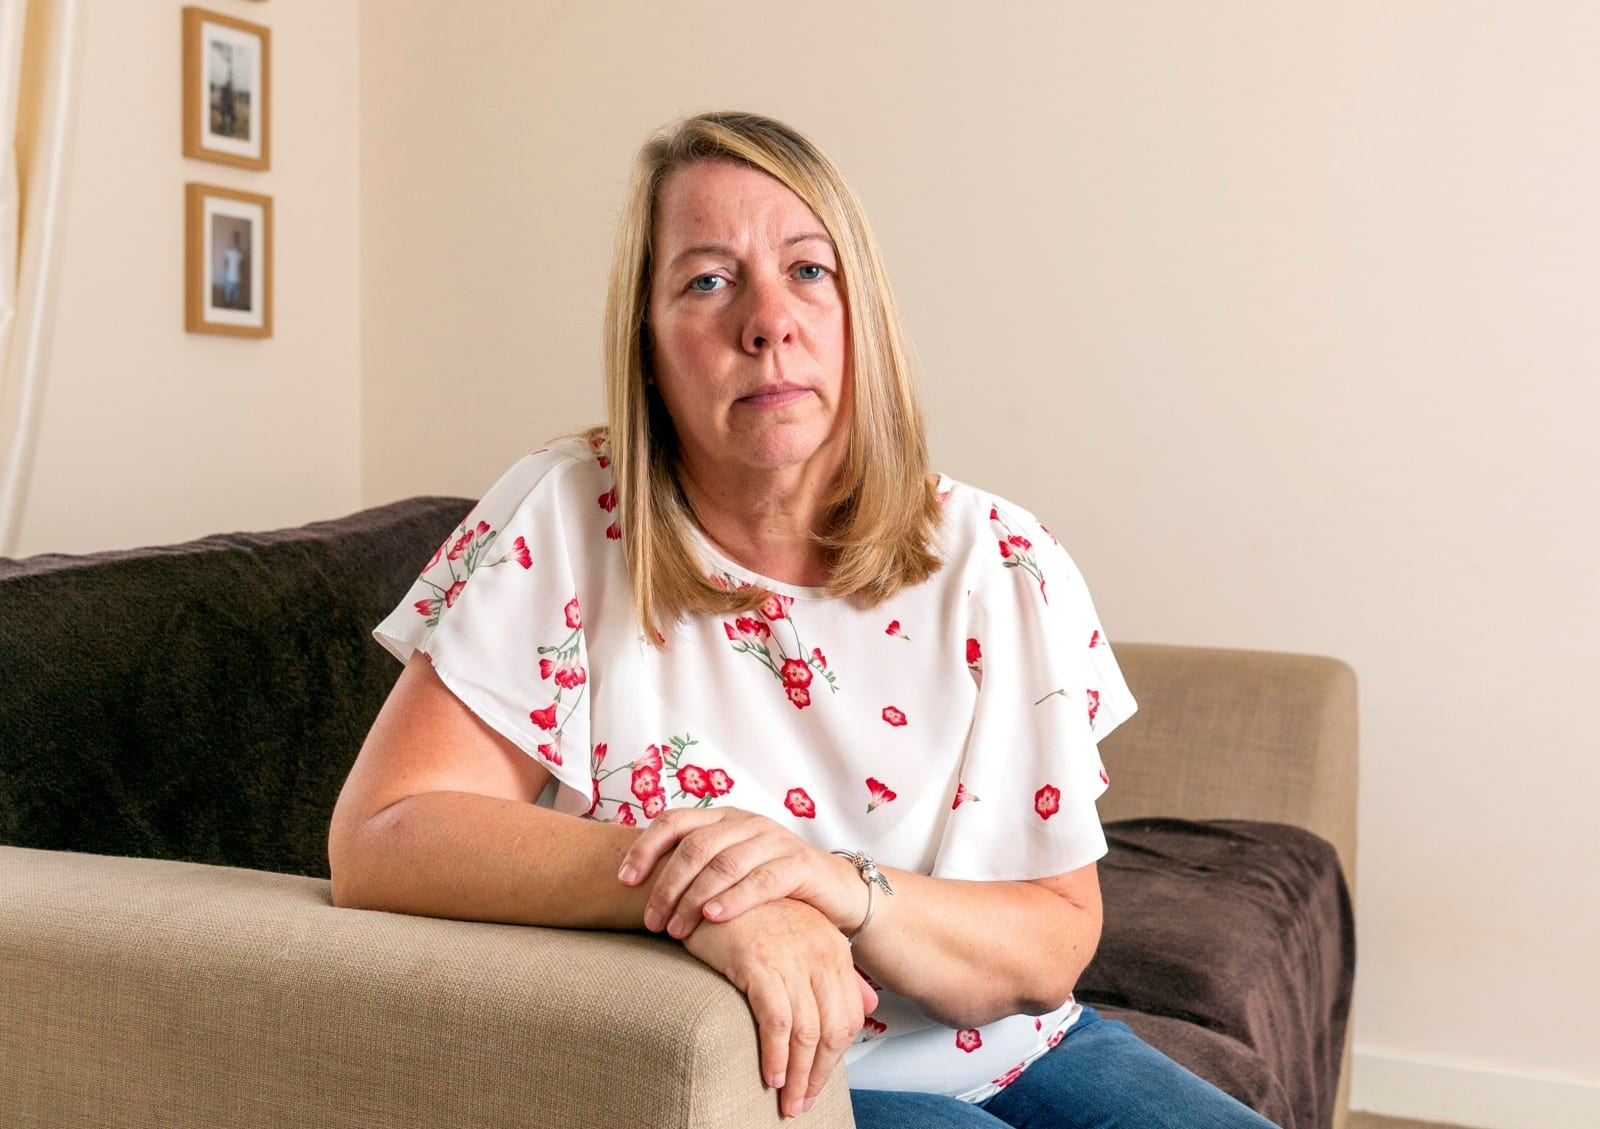 Brave Woman Has Told How She Brought Her 'Monster' Ex-Partner To Justice After Suffering 35 YEARS Of Abuse